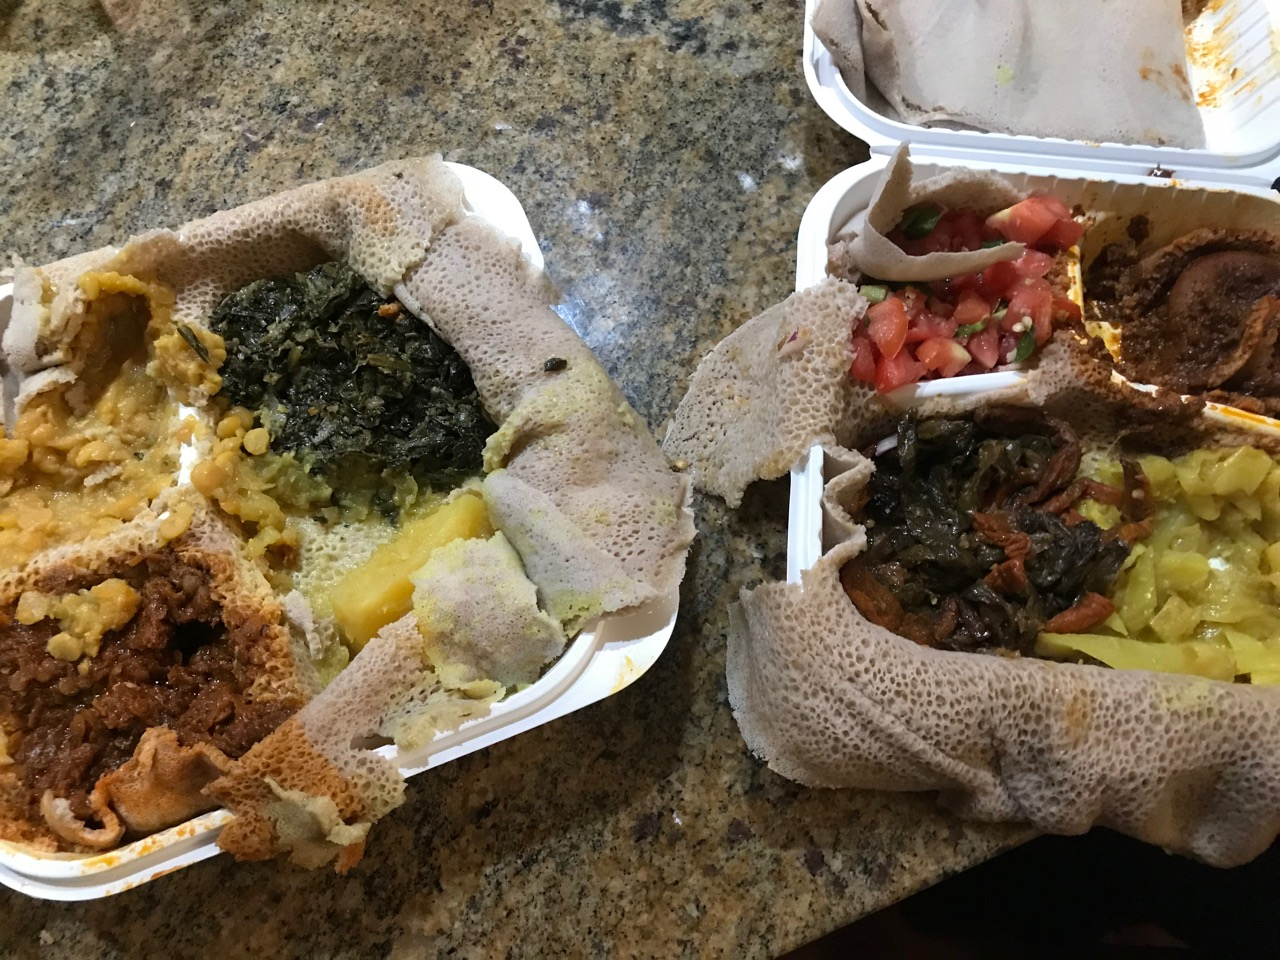 Ethiopian takeout food trays